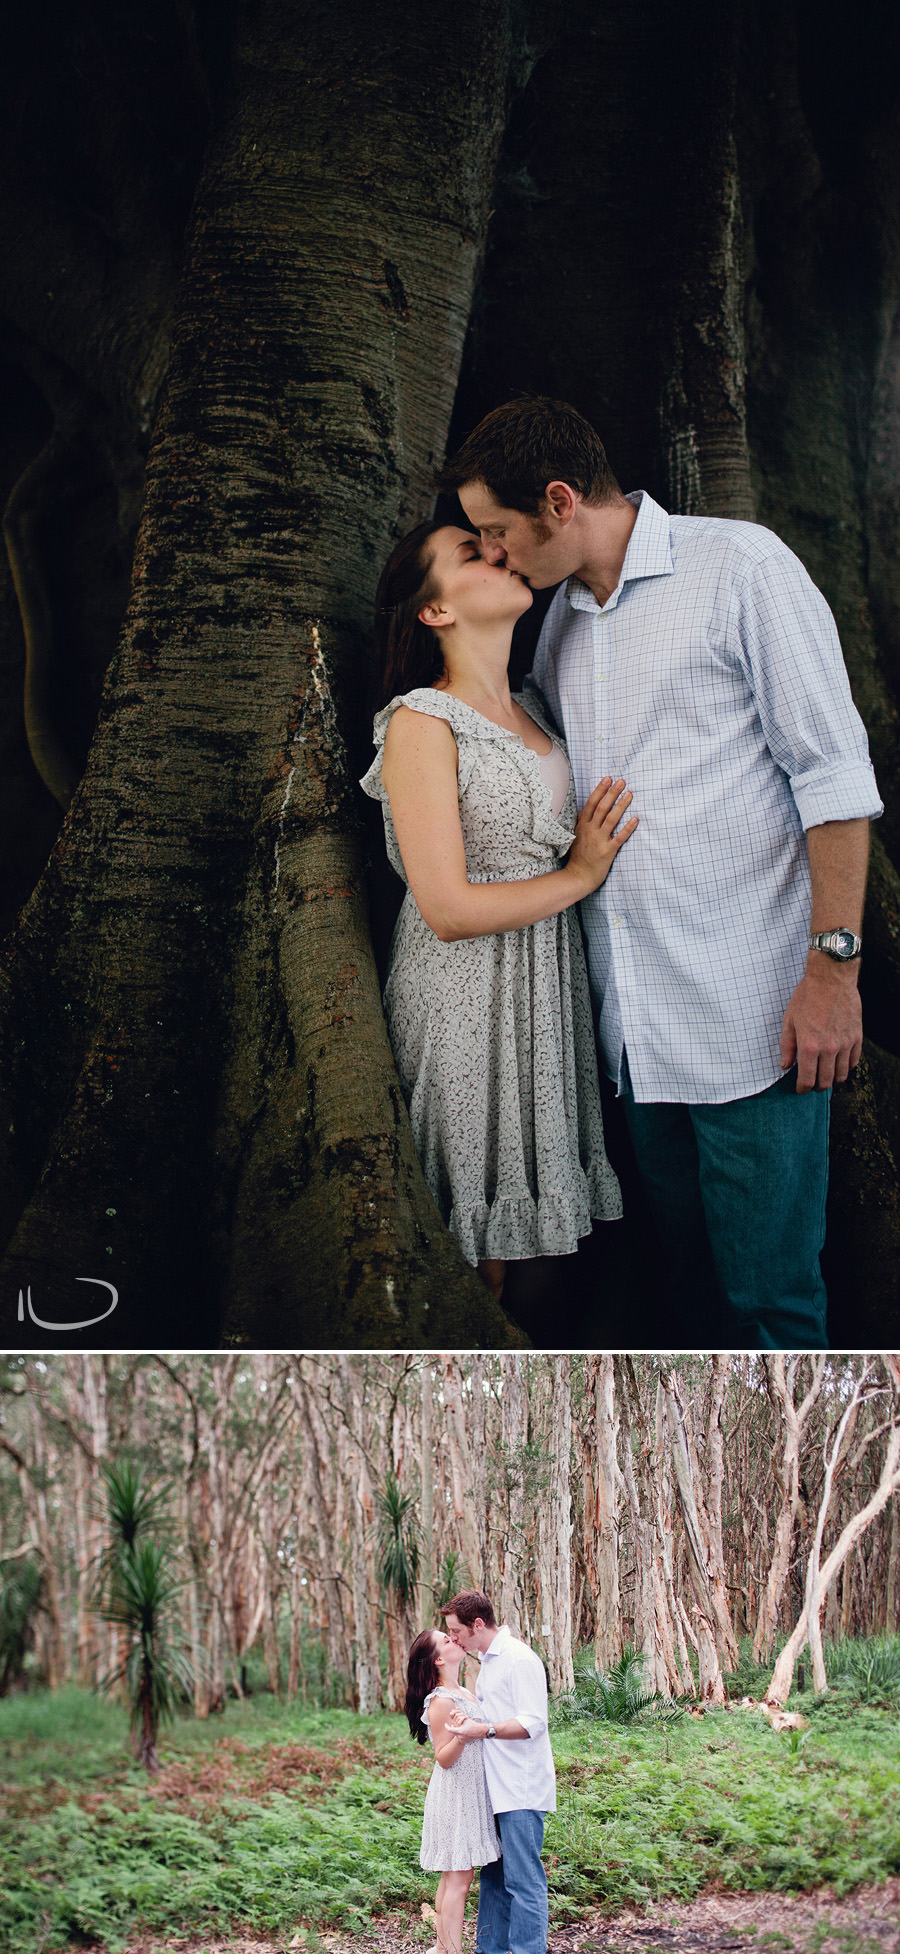 Sydney Engagement Photographer: Engaged couple in Centennial Park